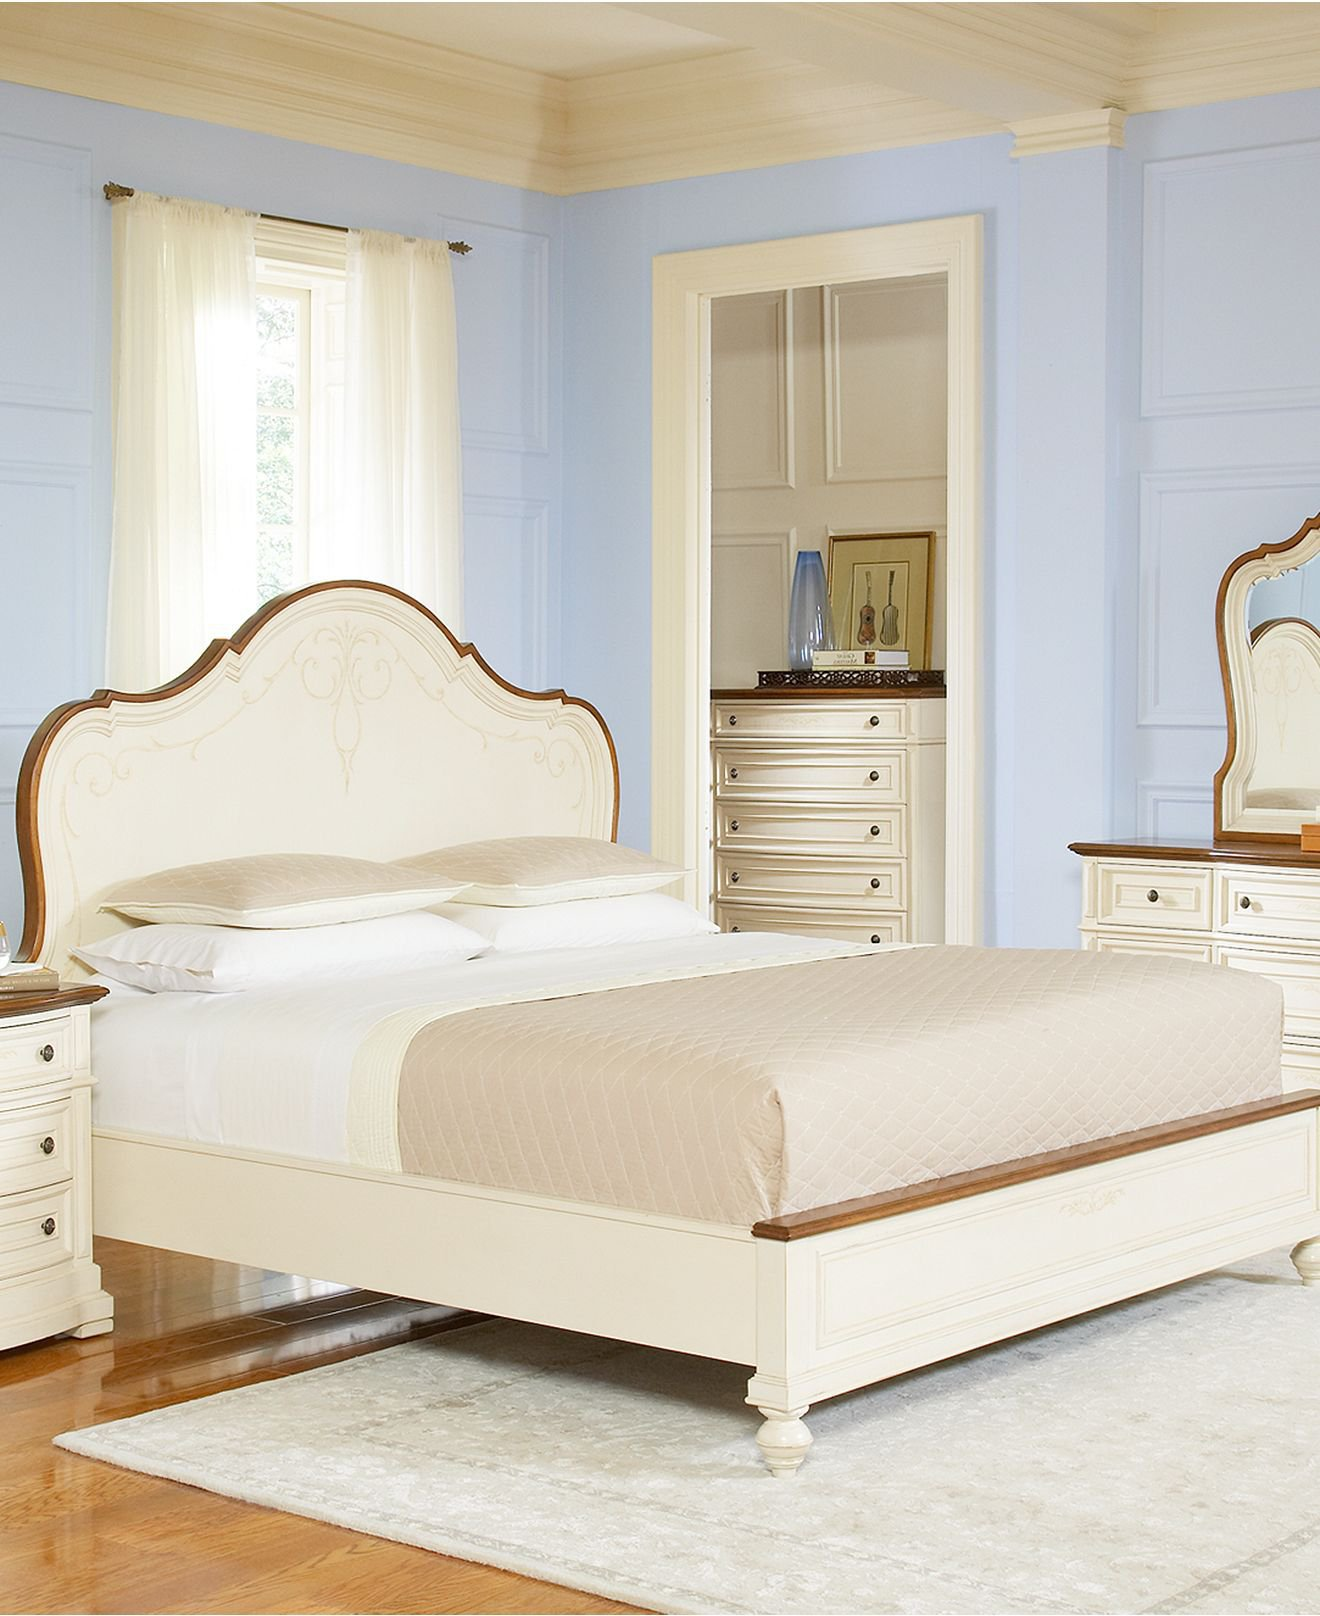 Coventry bedroom furniture sets pieces from macy 39 s Macy s home bedroom furniture